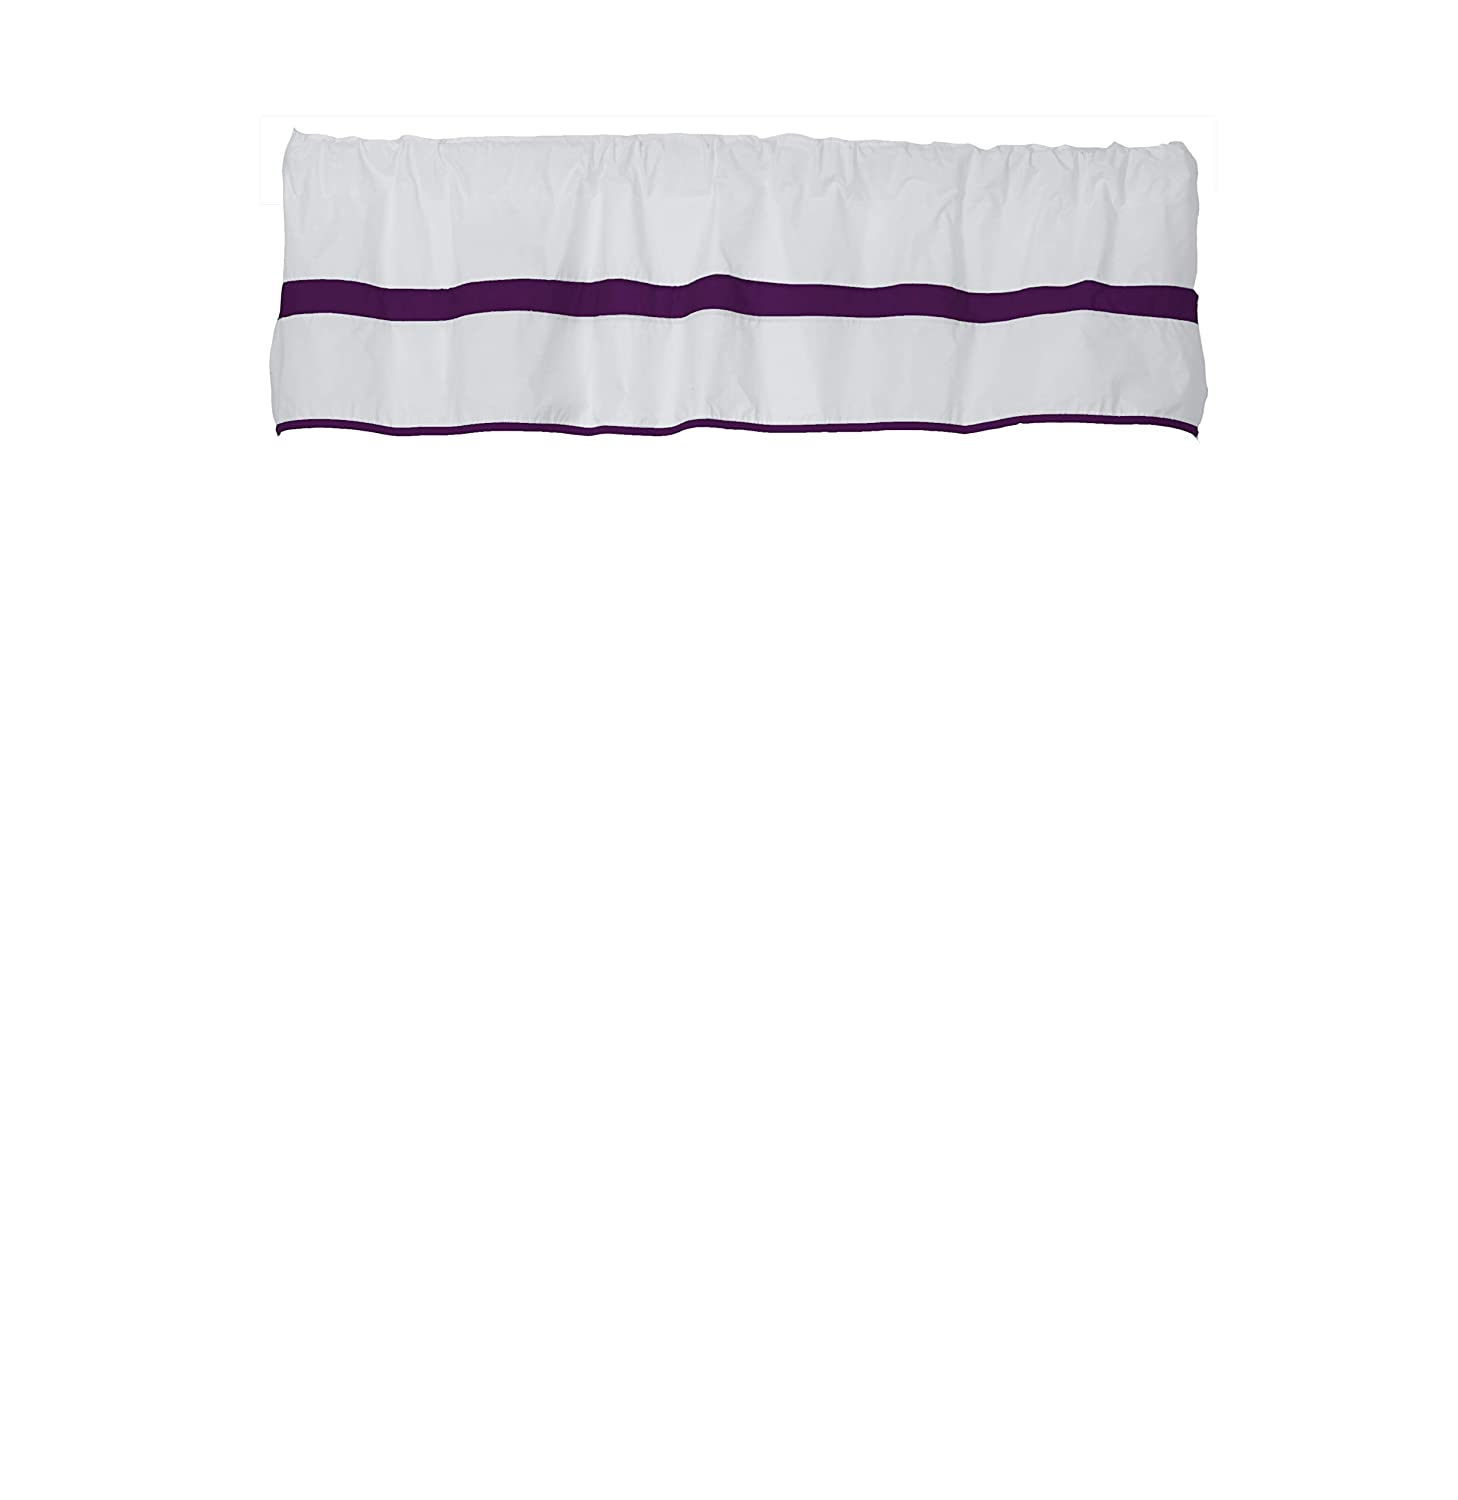 Baby Doll Bedding Modern Hotel Window Outlet SALE Plum Valance Style Max 86% OFF